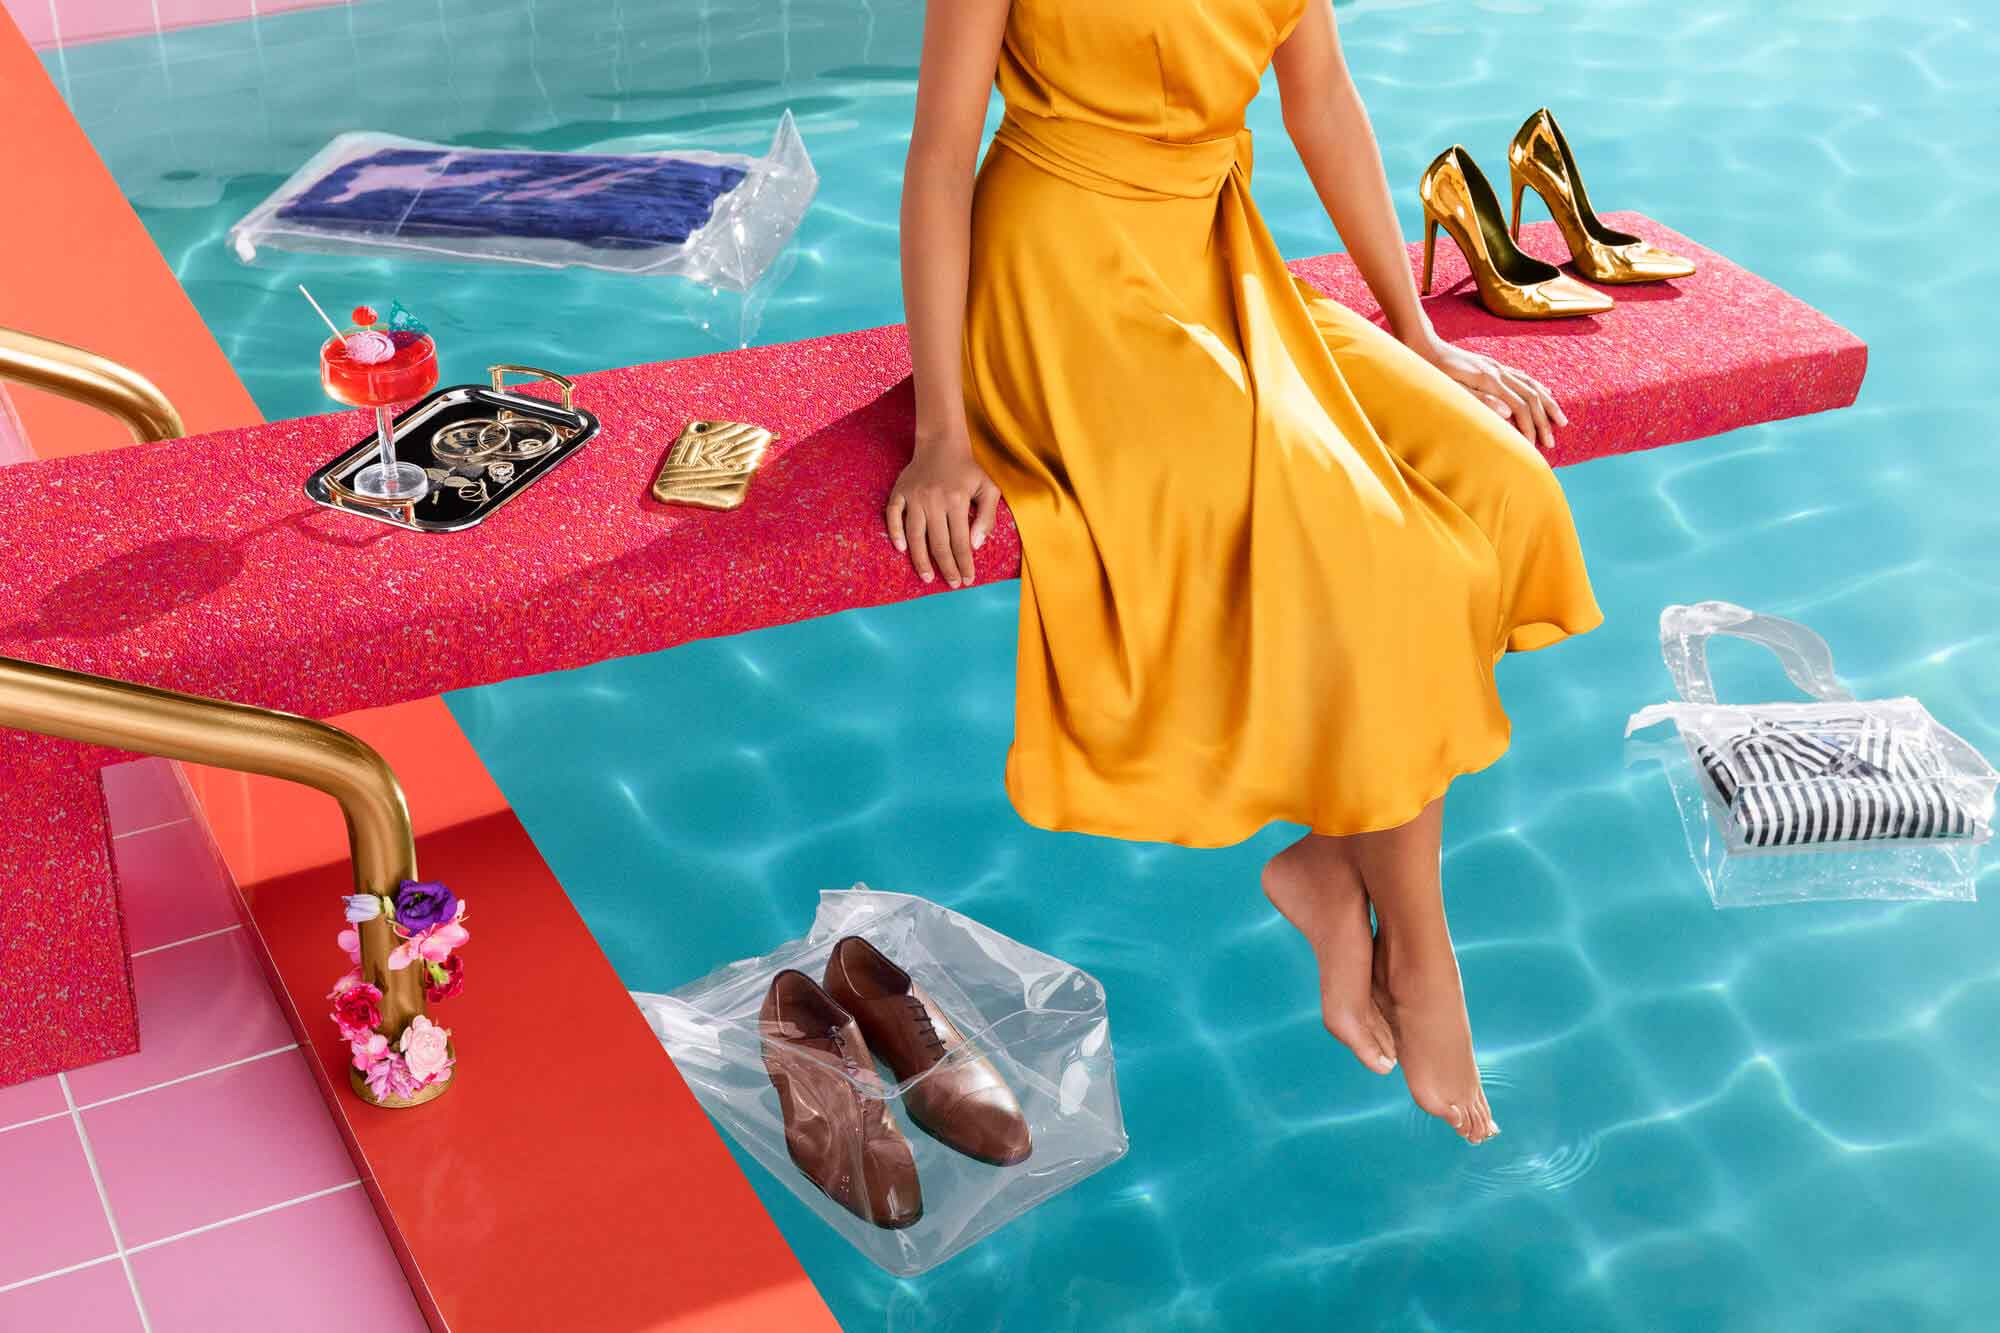 Woman sitting on a diving board surrounded by shoes